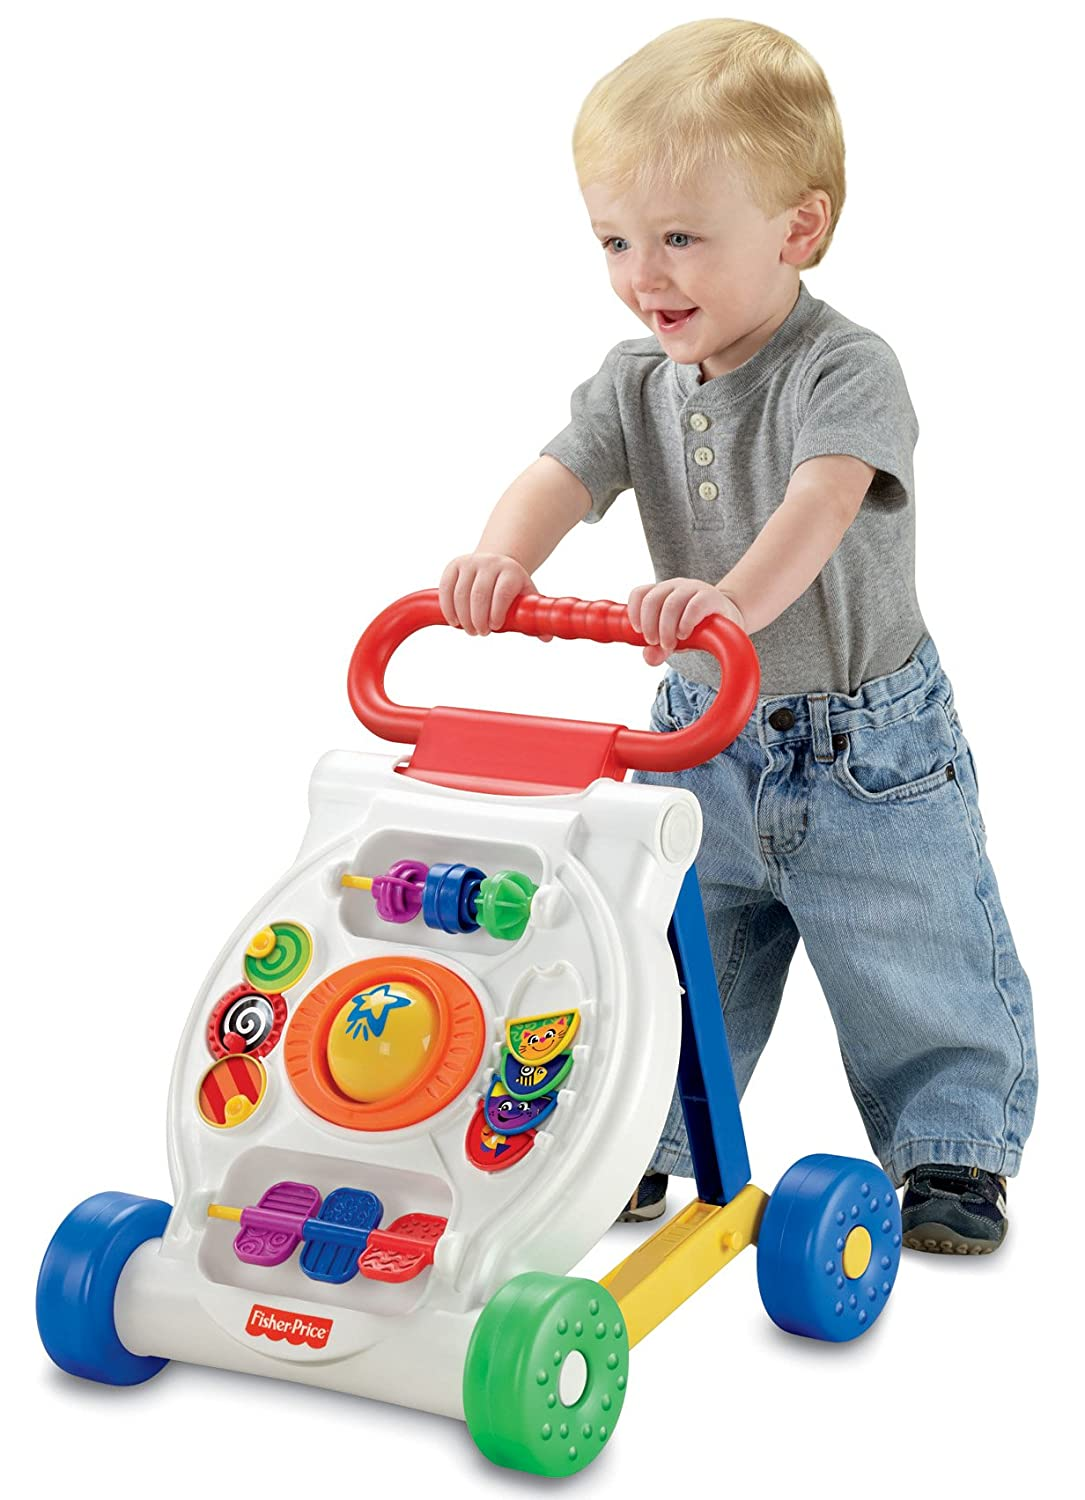 Toys For 9 : Car sit to stand teaching learning toy baby toddler infant